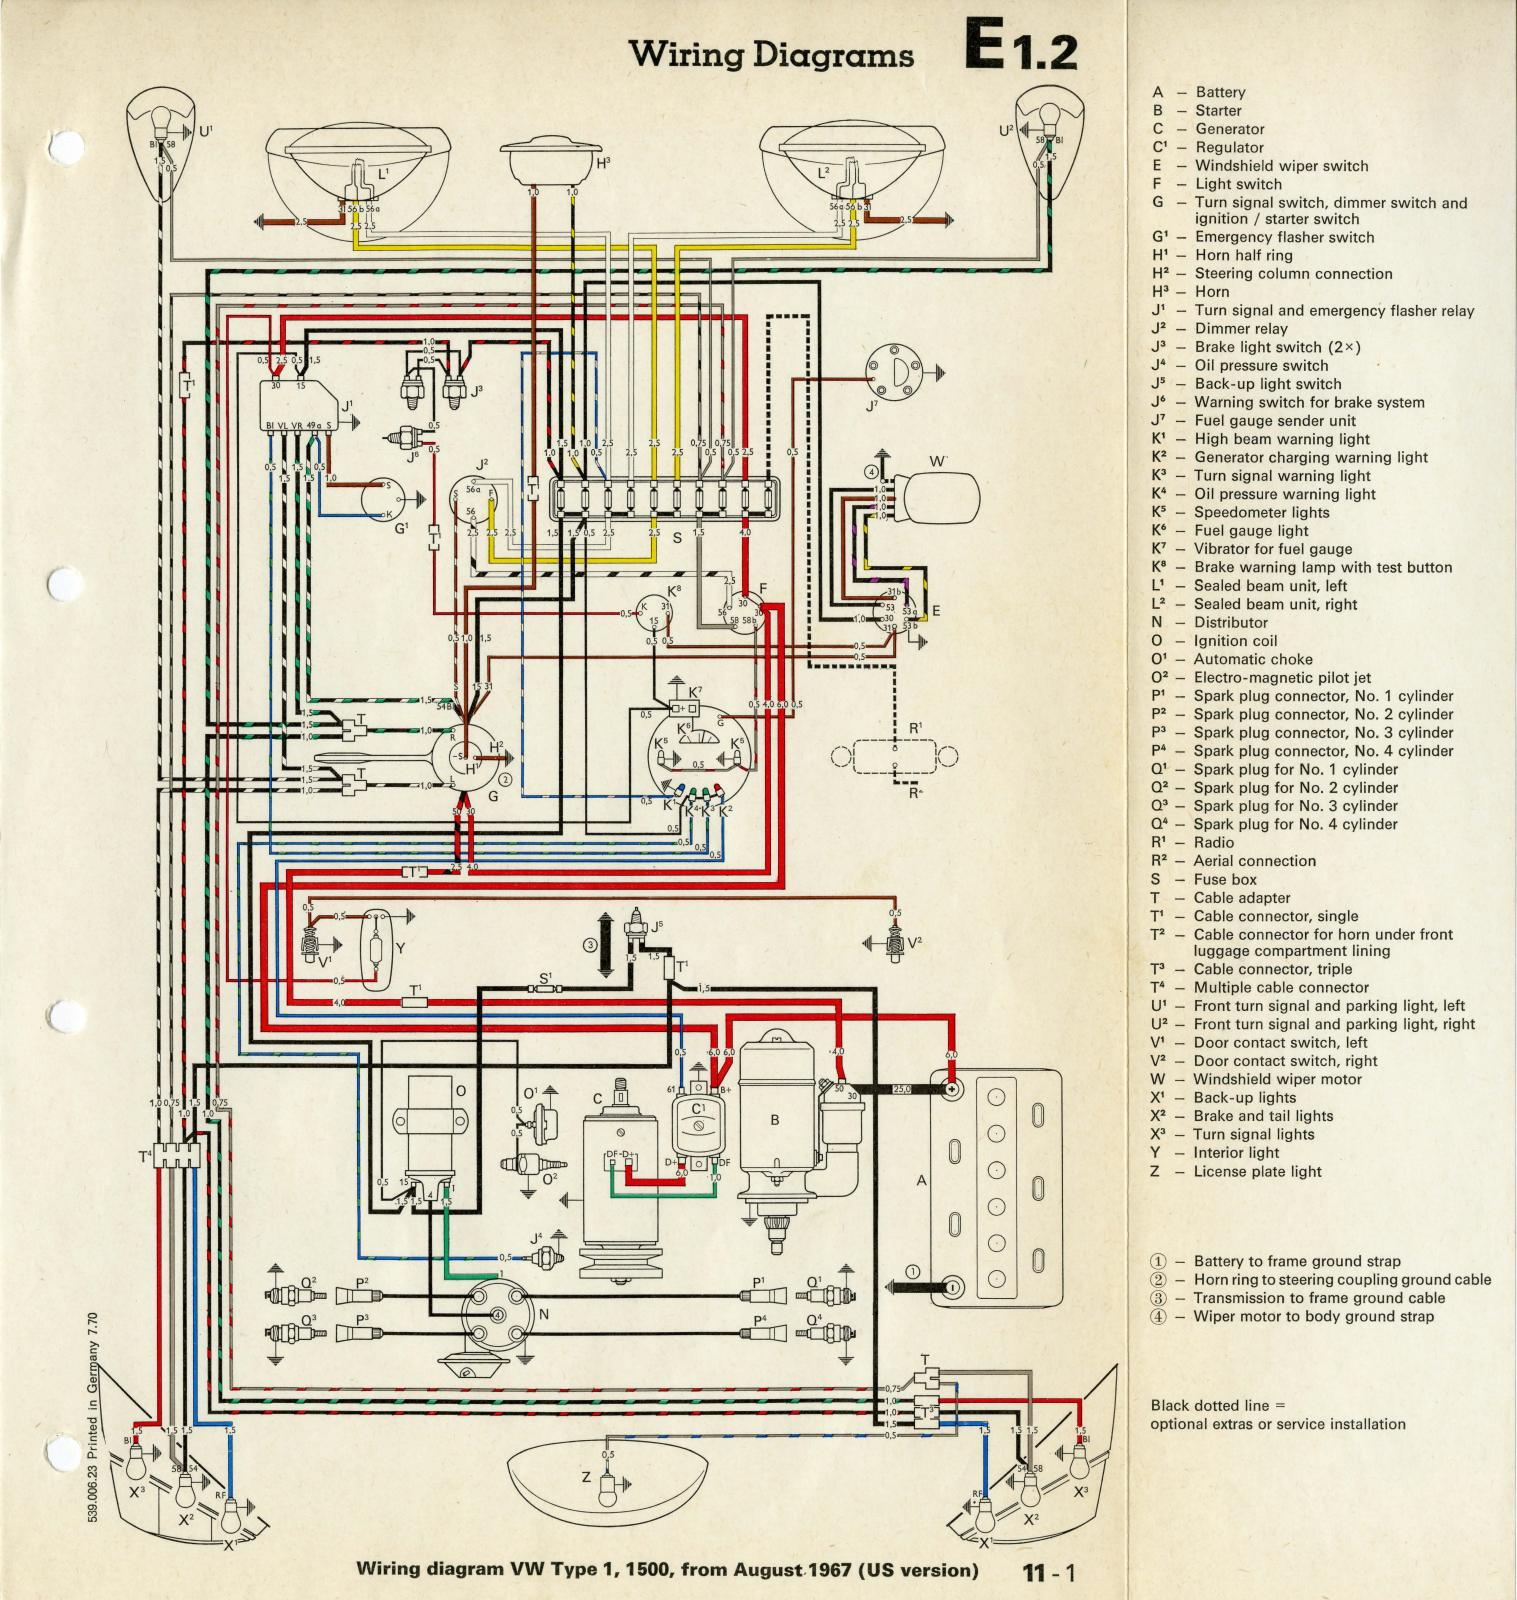 Vw Beetle Autostick Wiring Diagram Complete Diagrams As Well Bus On 74 Super And Thesamba Com Late Model 1968 Up View Topic Rh 1974